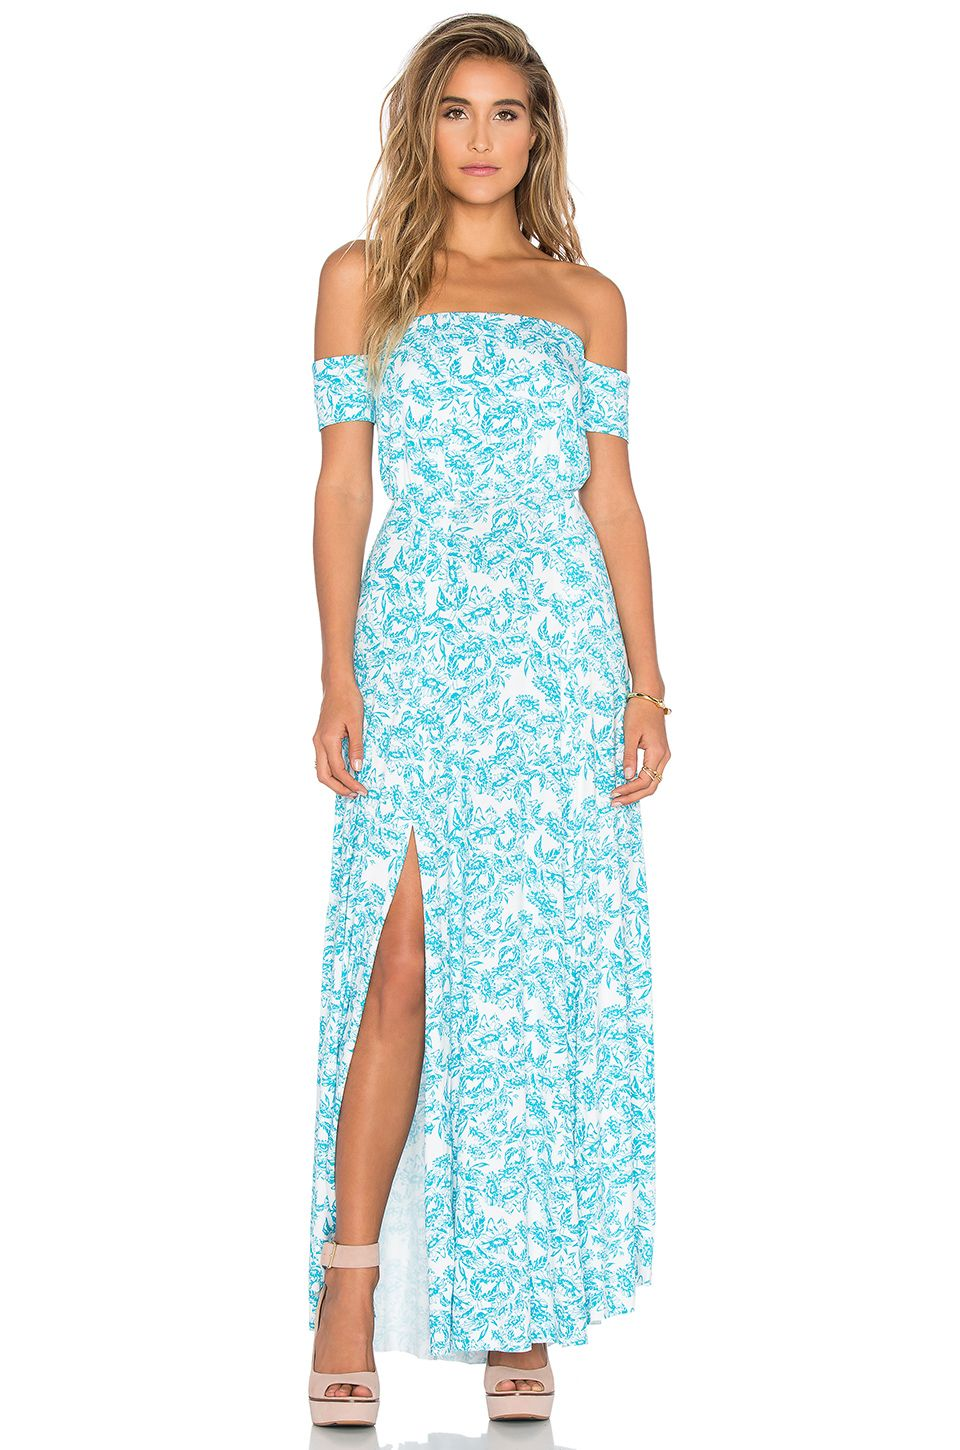 Clayton Margaret Dress in Turquoise Sunflower | REVOLVE | Outfits ...